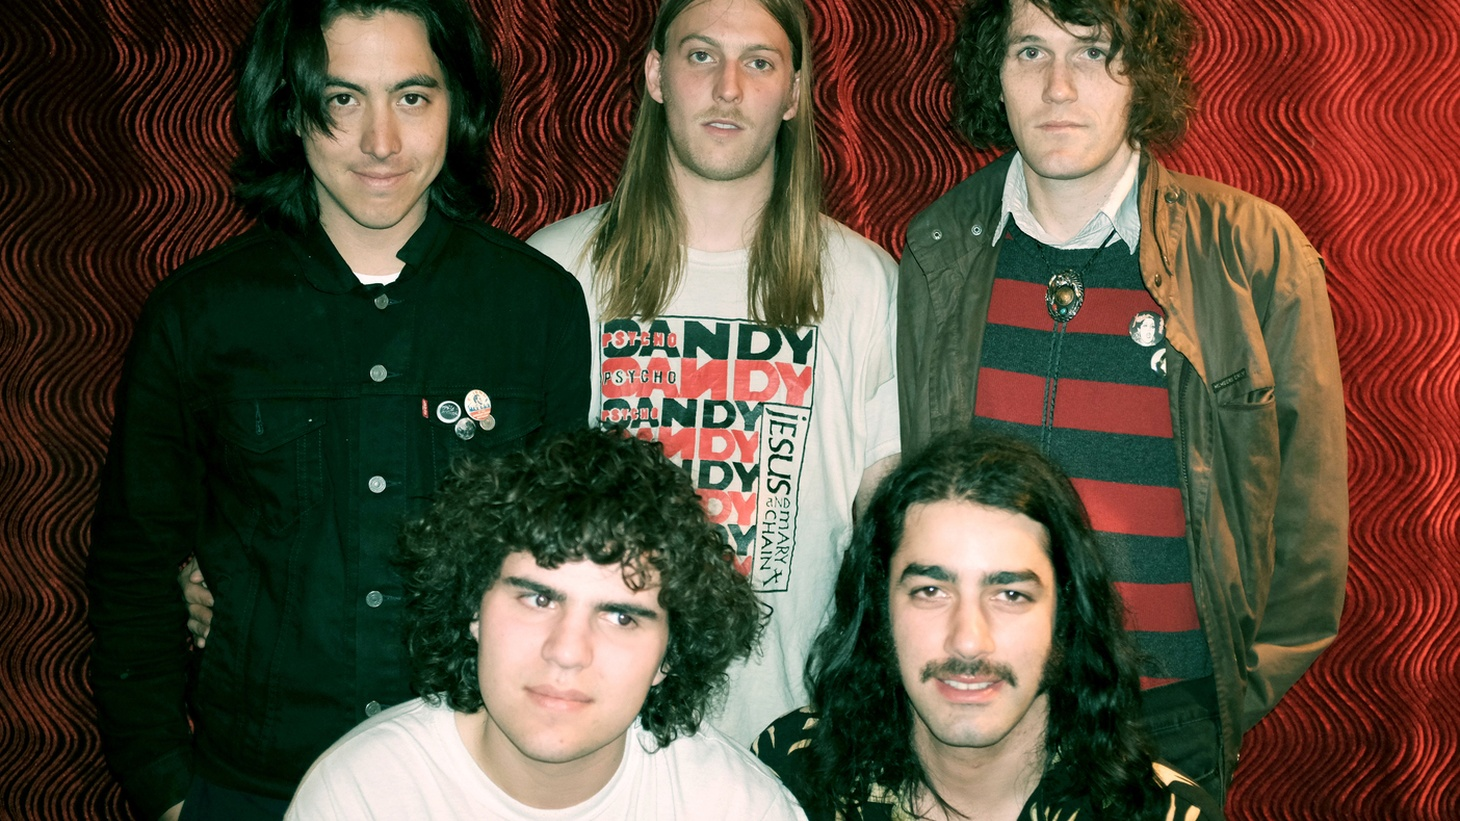 With songs that are crunchy and raw, The Mystery Lights is a Brooklyn based quintet which provides fuzz-fueled jams.